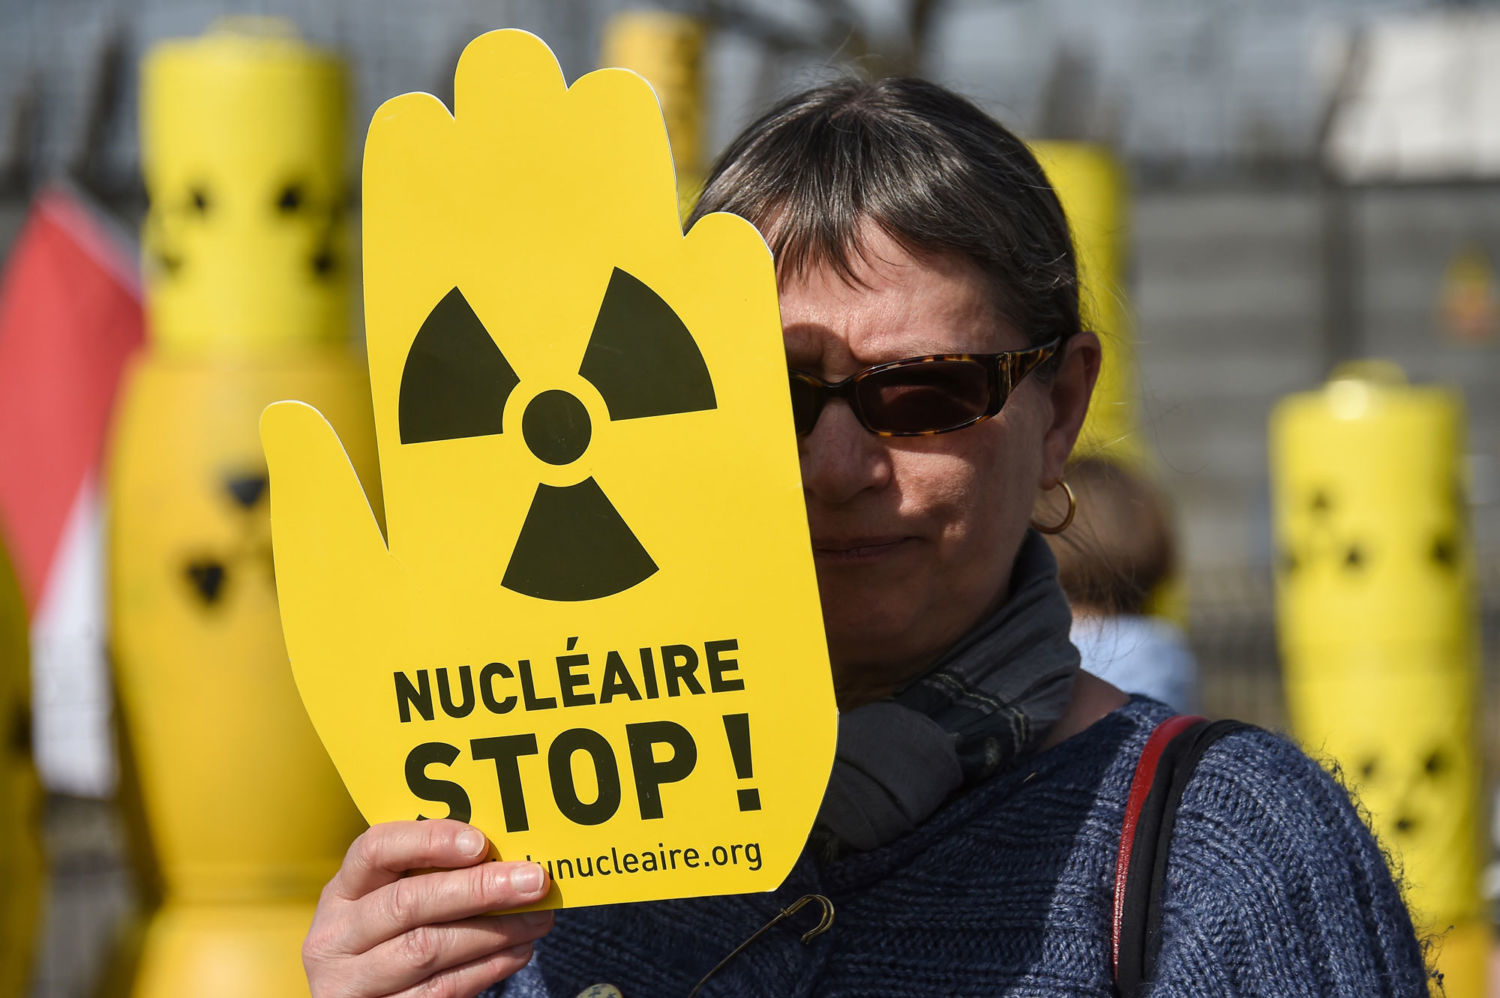 Solutions To Nuclear Energy Problems The Problem With